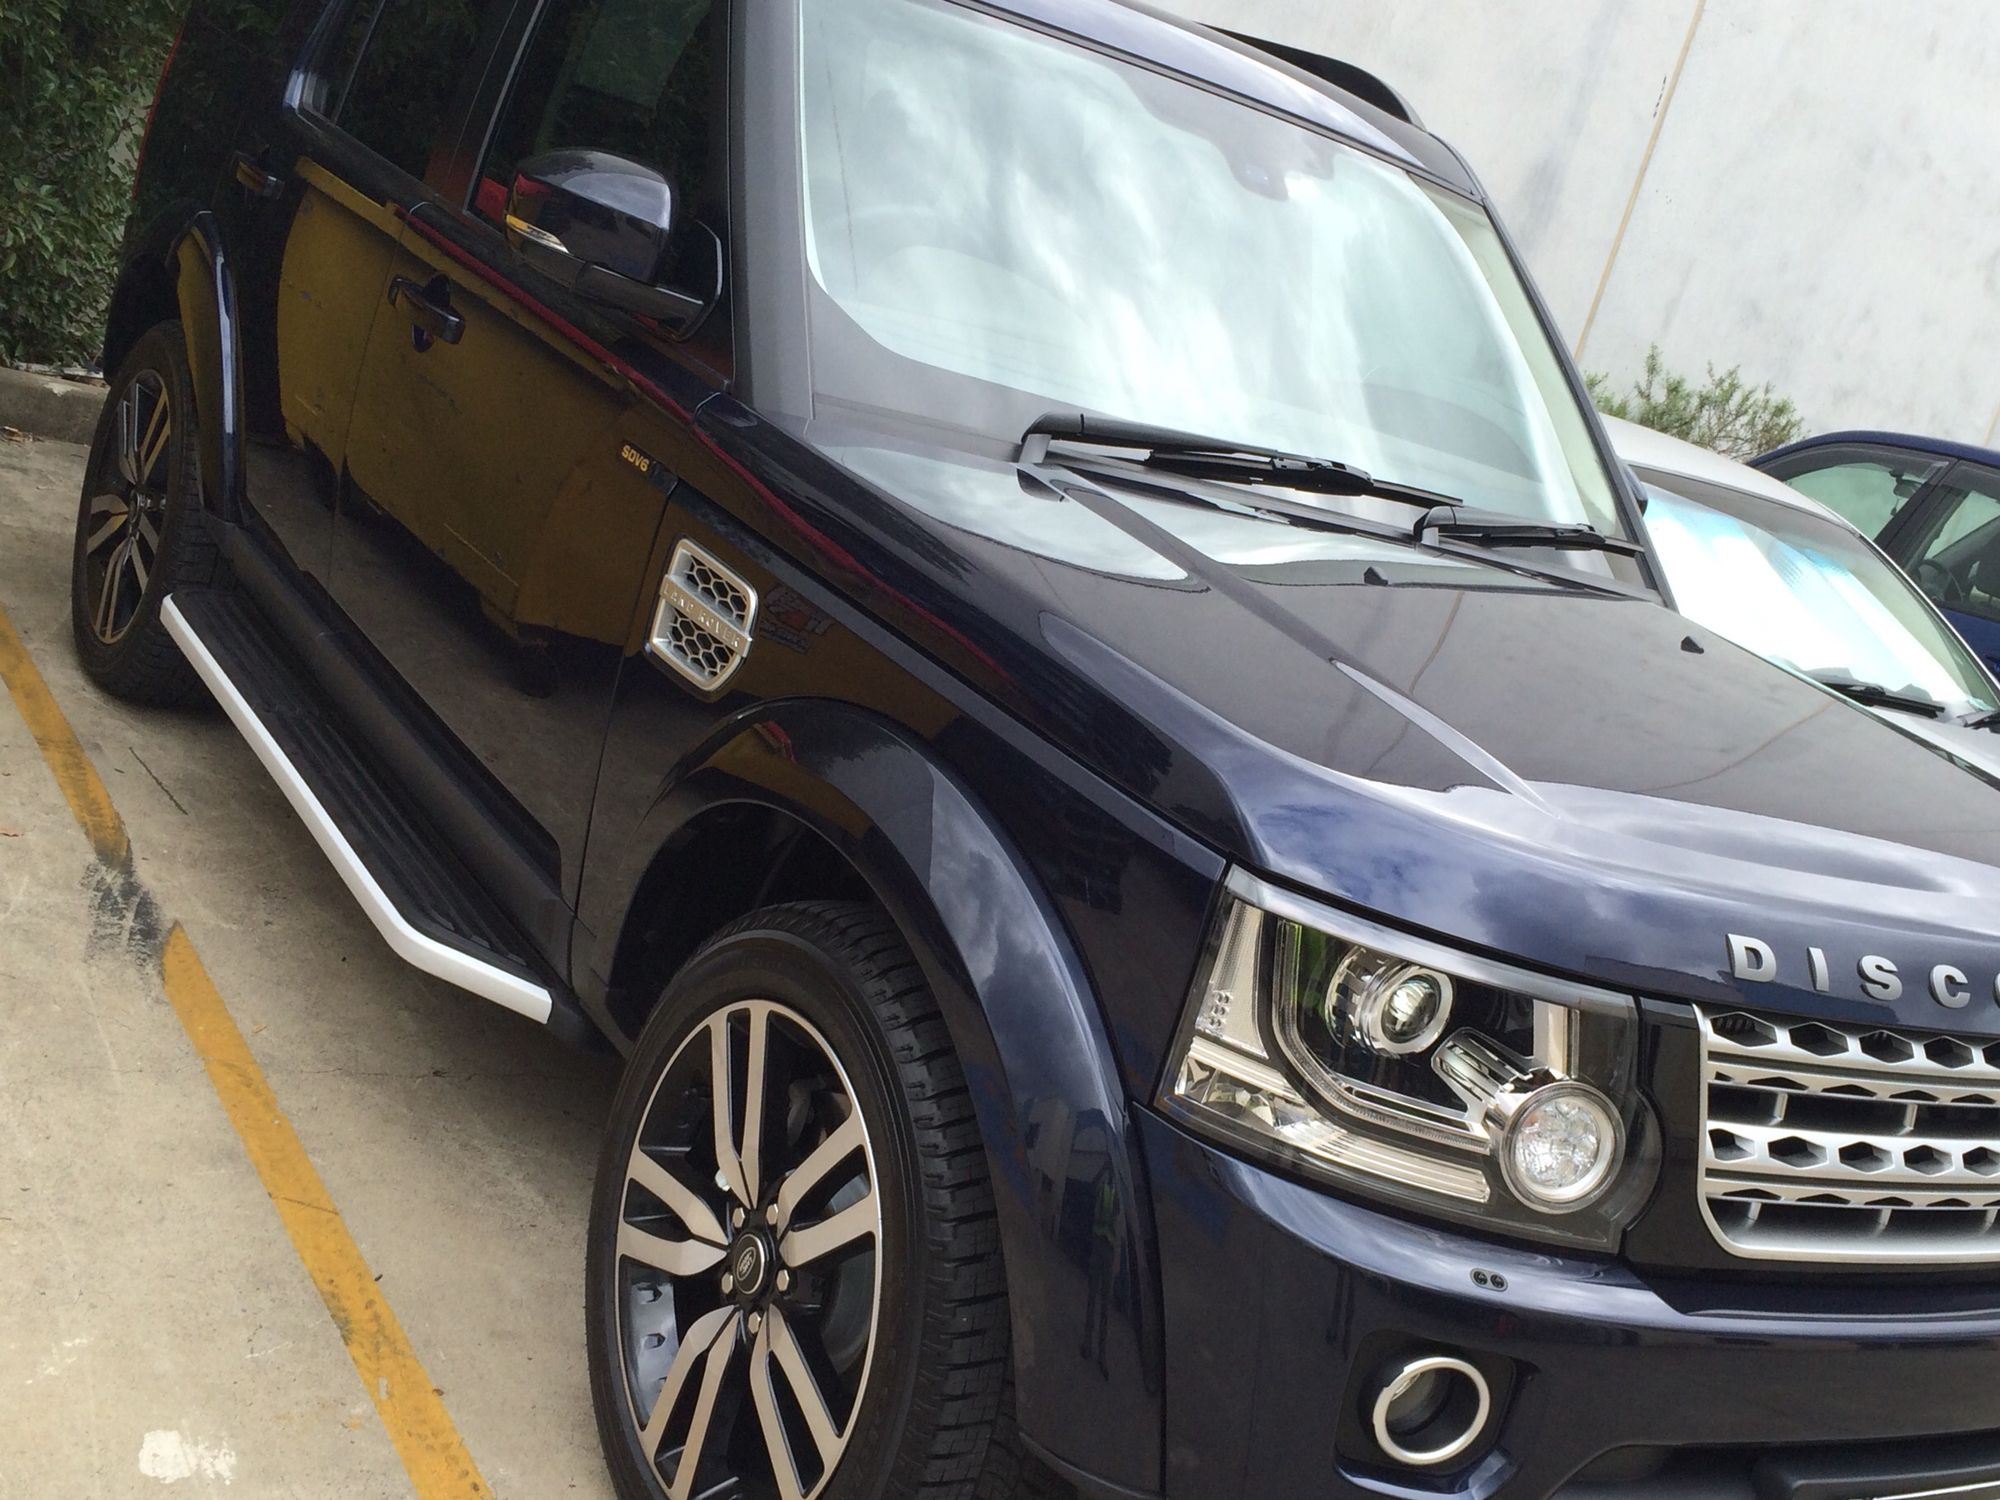 Land Rover Discovery 4 Side Steps Running Board Complete The Off Road Look Rover Discovery Land Rover Discovery Land Rover